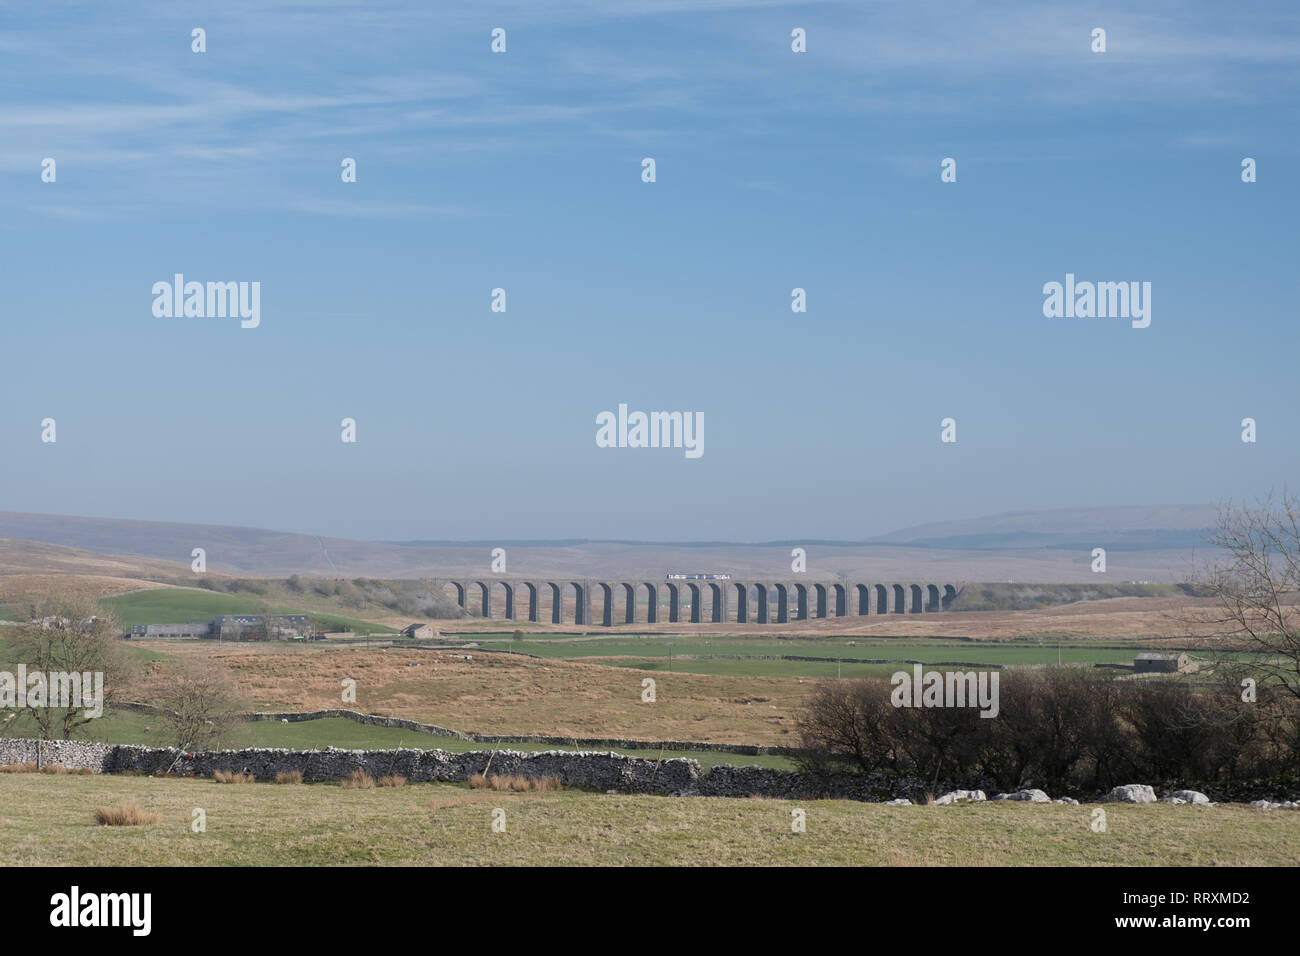 Ribblehead viaduct from the Winterscales dale below Whernside in the Yorkshire Dales - Stock Image